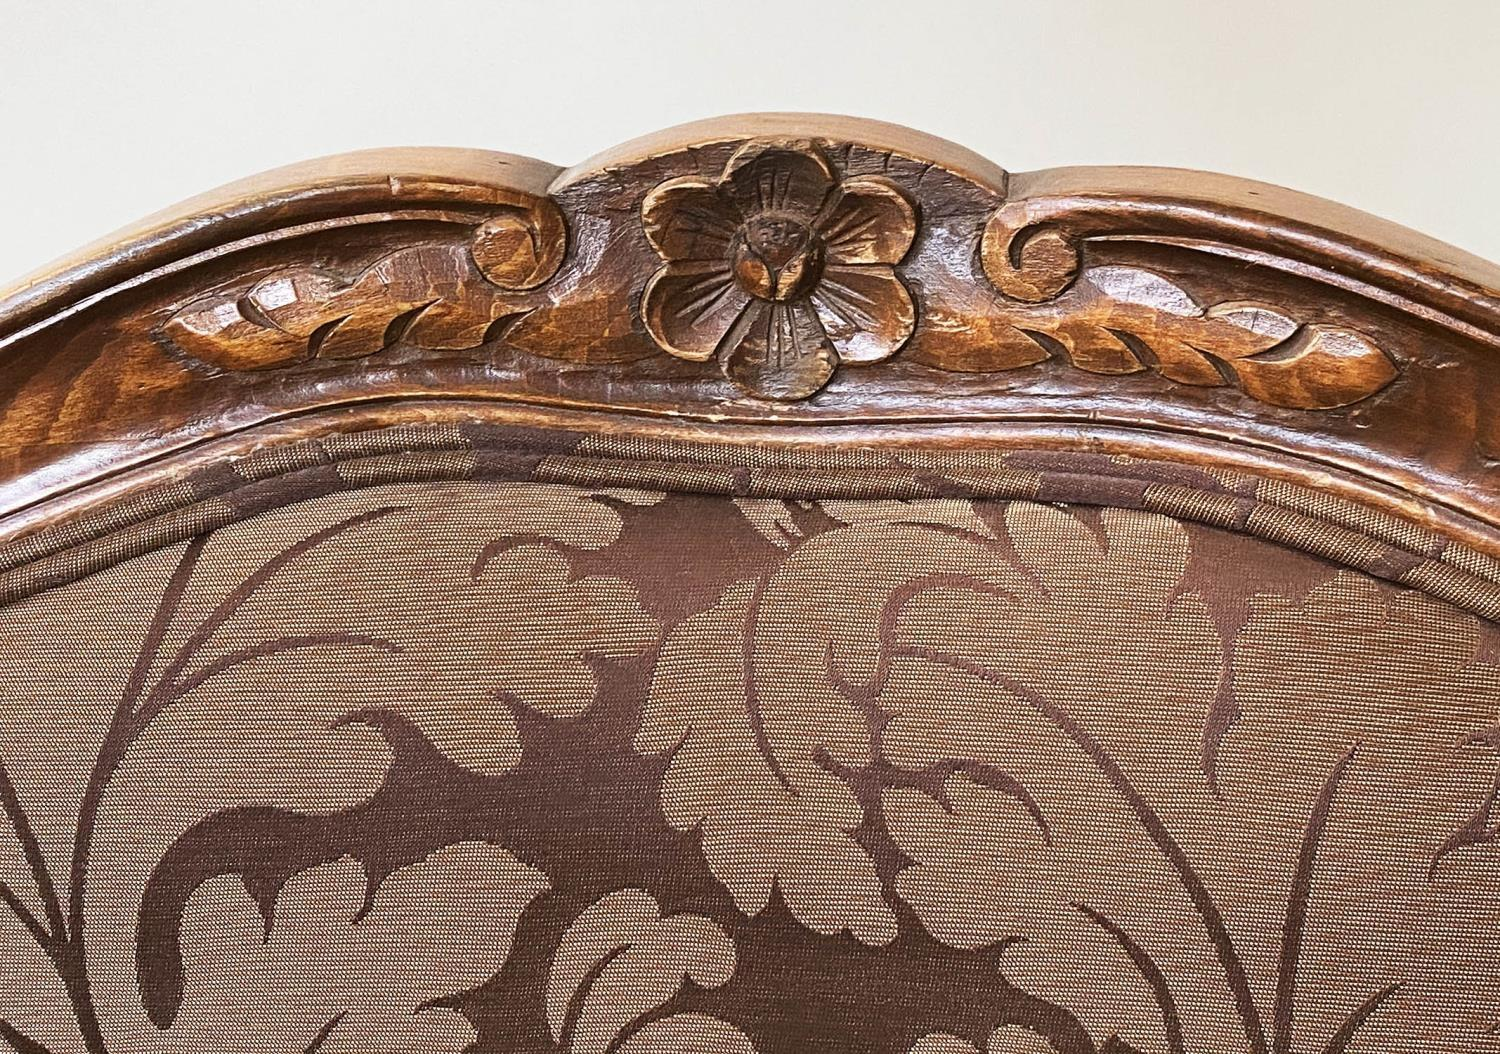 FAUTEUILS, a pair, French Louis XV style, stained walnut, with two tone brown leaf silk - Image 4 of 9